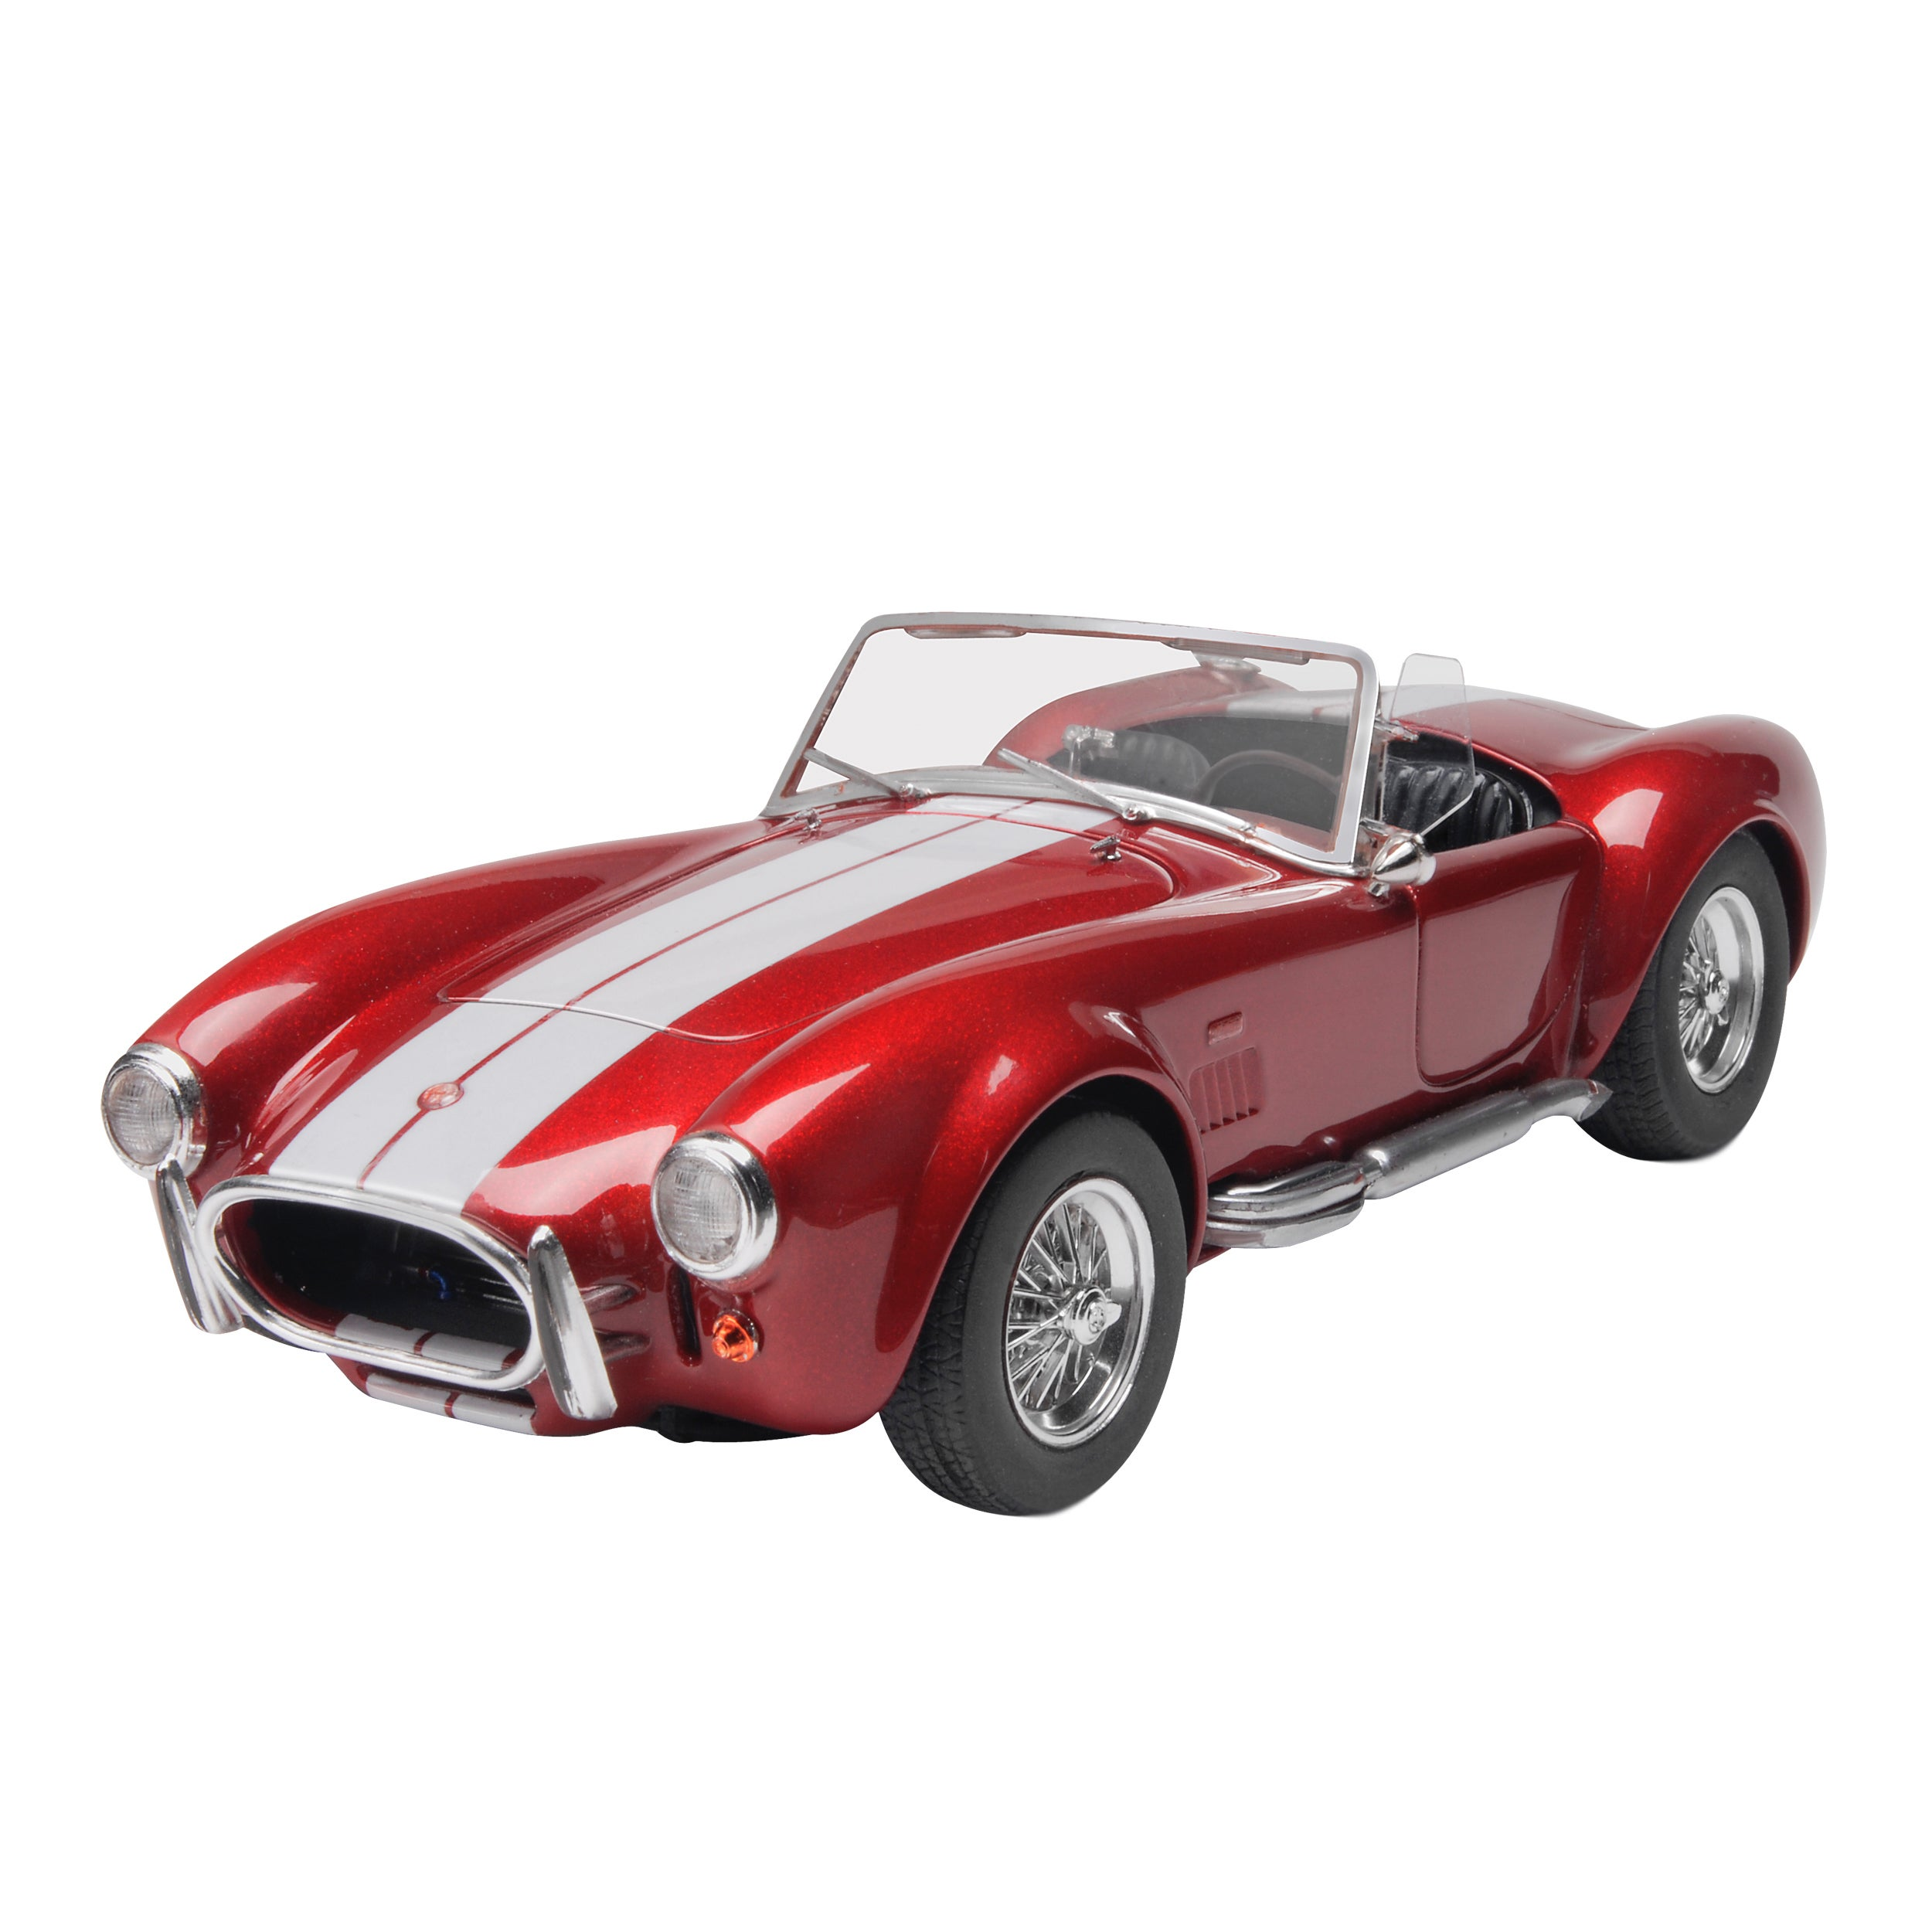 Revell-Monogram Revell Shelby Cobra 427 Plastic Model Kit at Sears.com